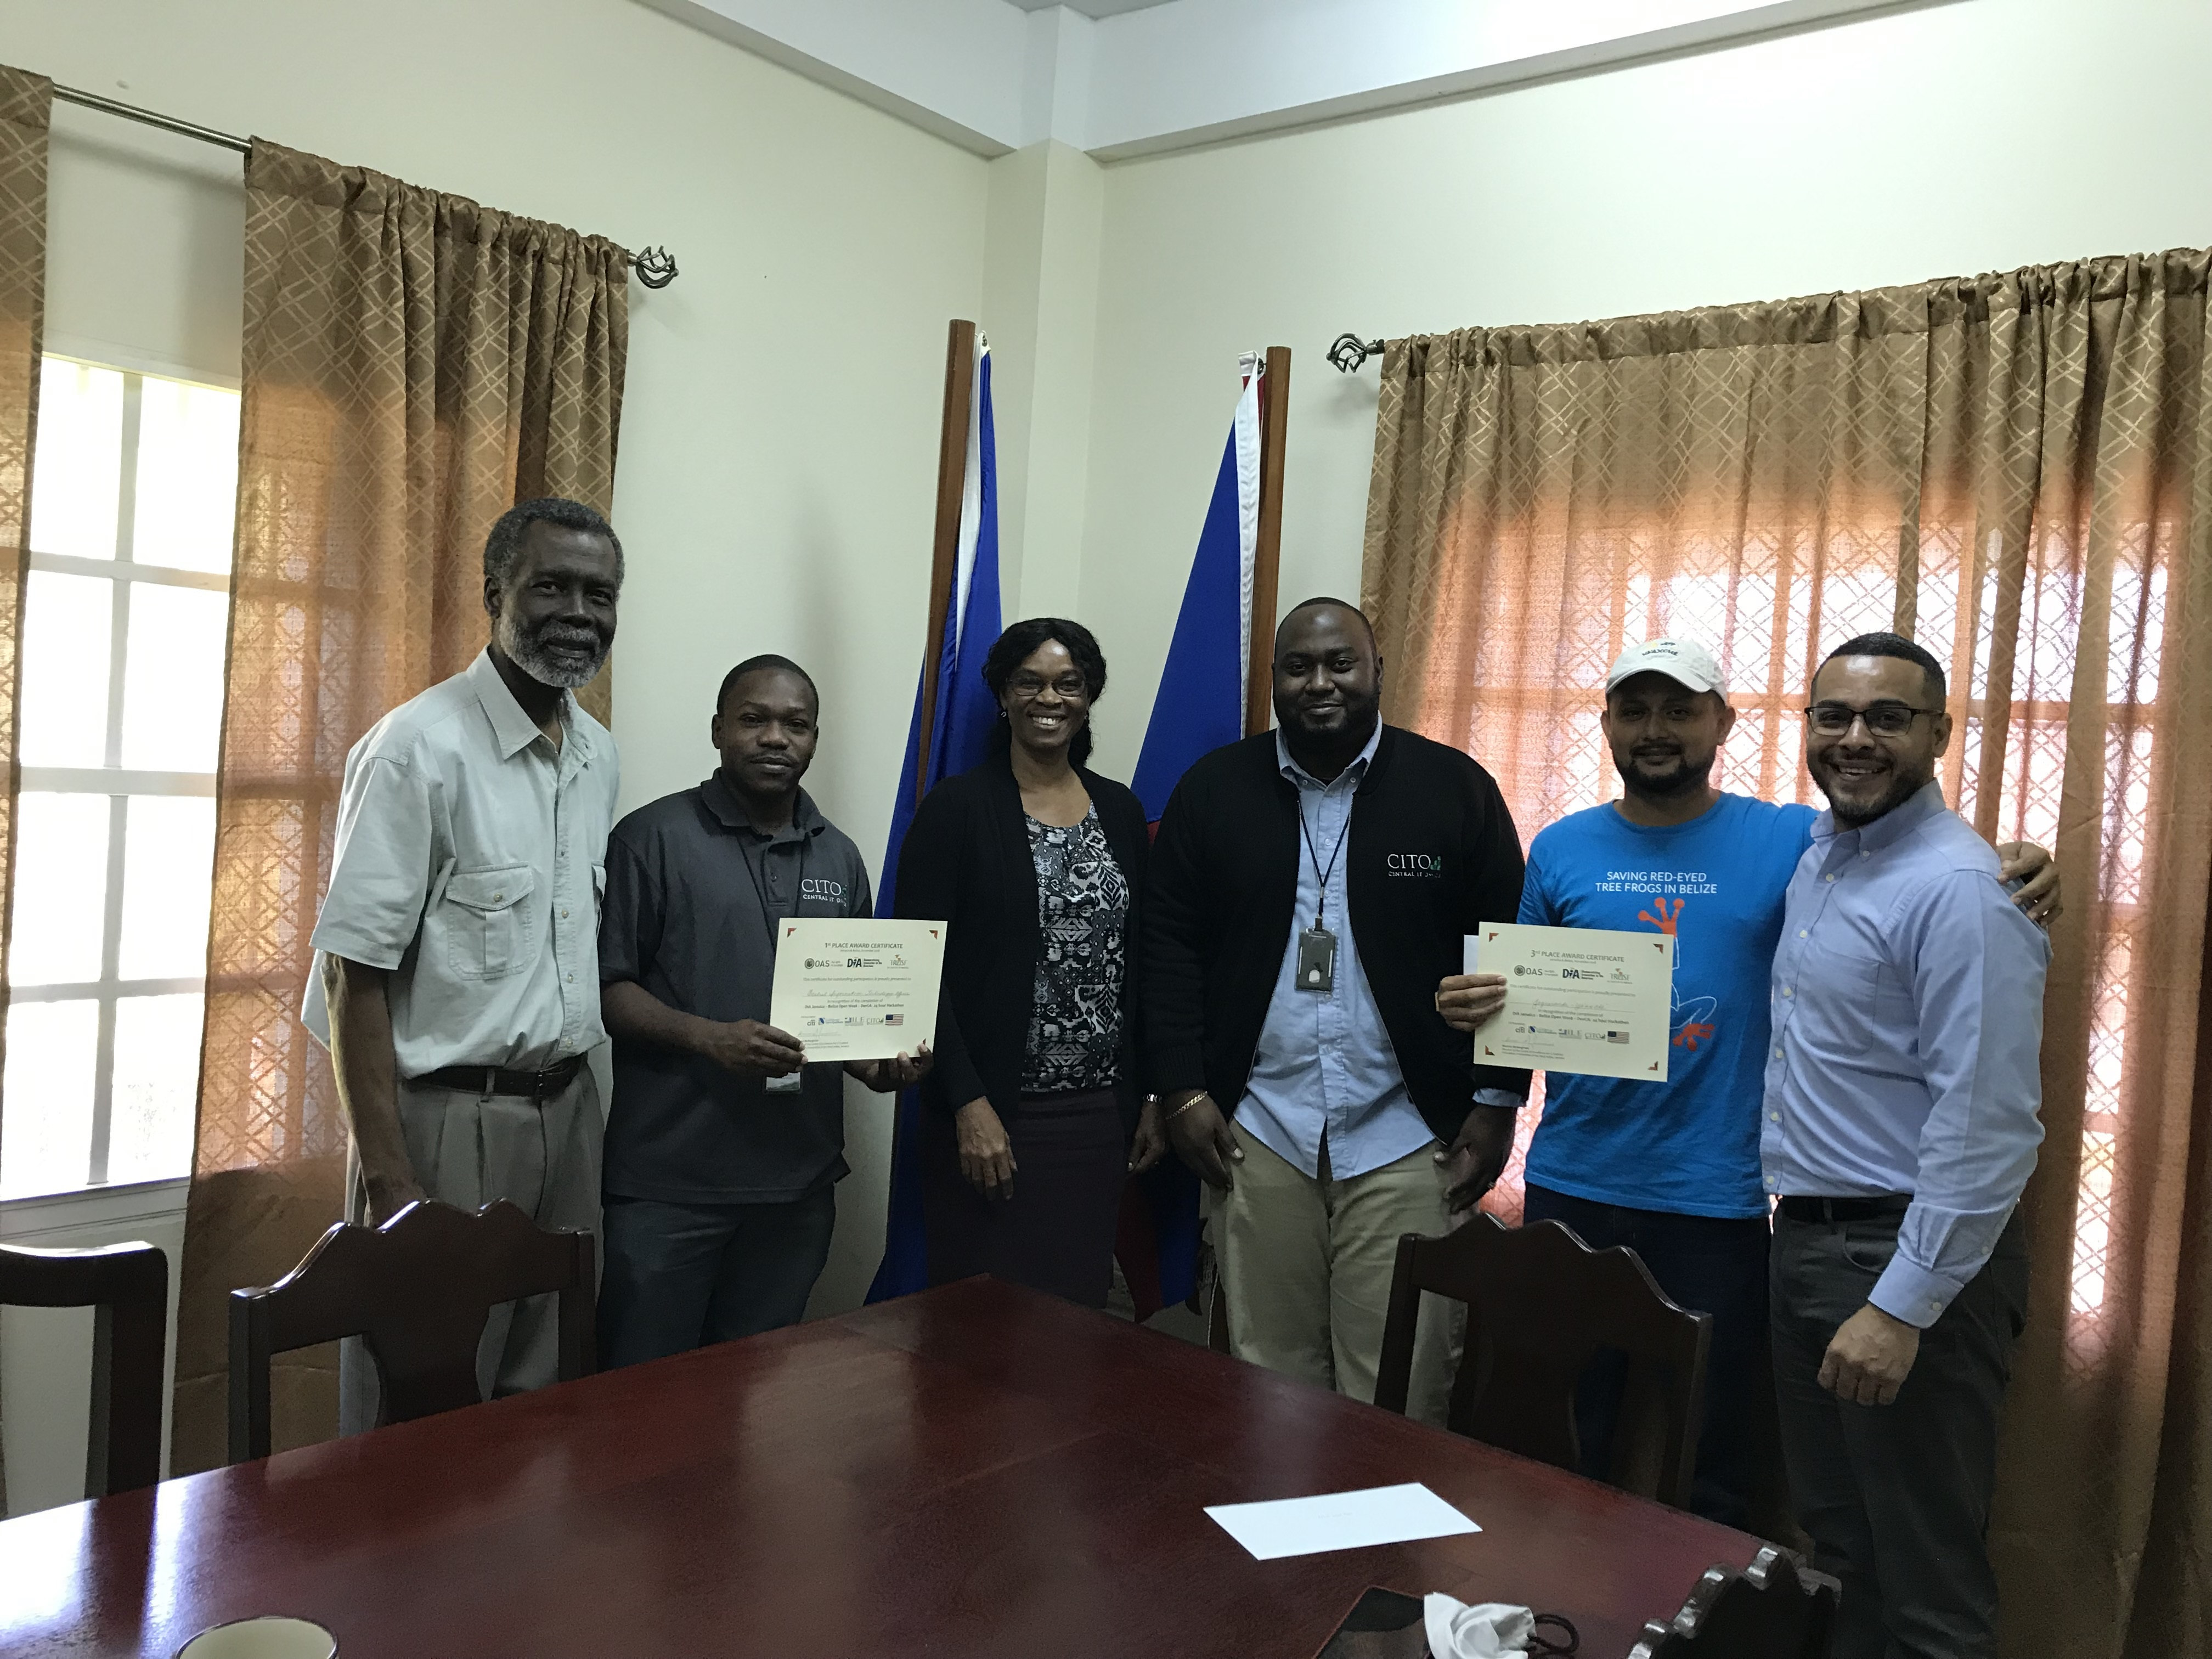 OAS Belize Office assisted in Organizing Belize Open Week (Oct 30 to November 2, 2018)